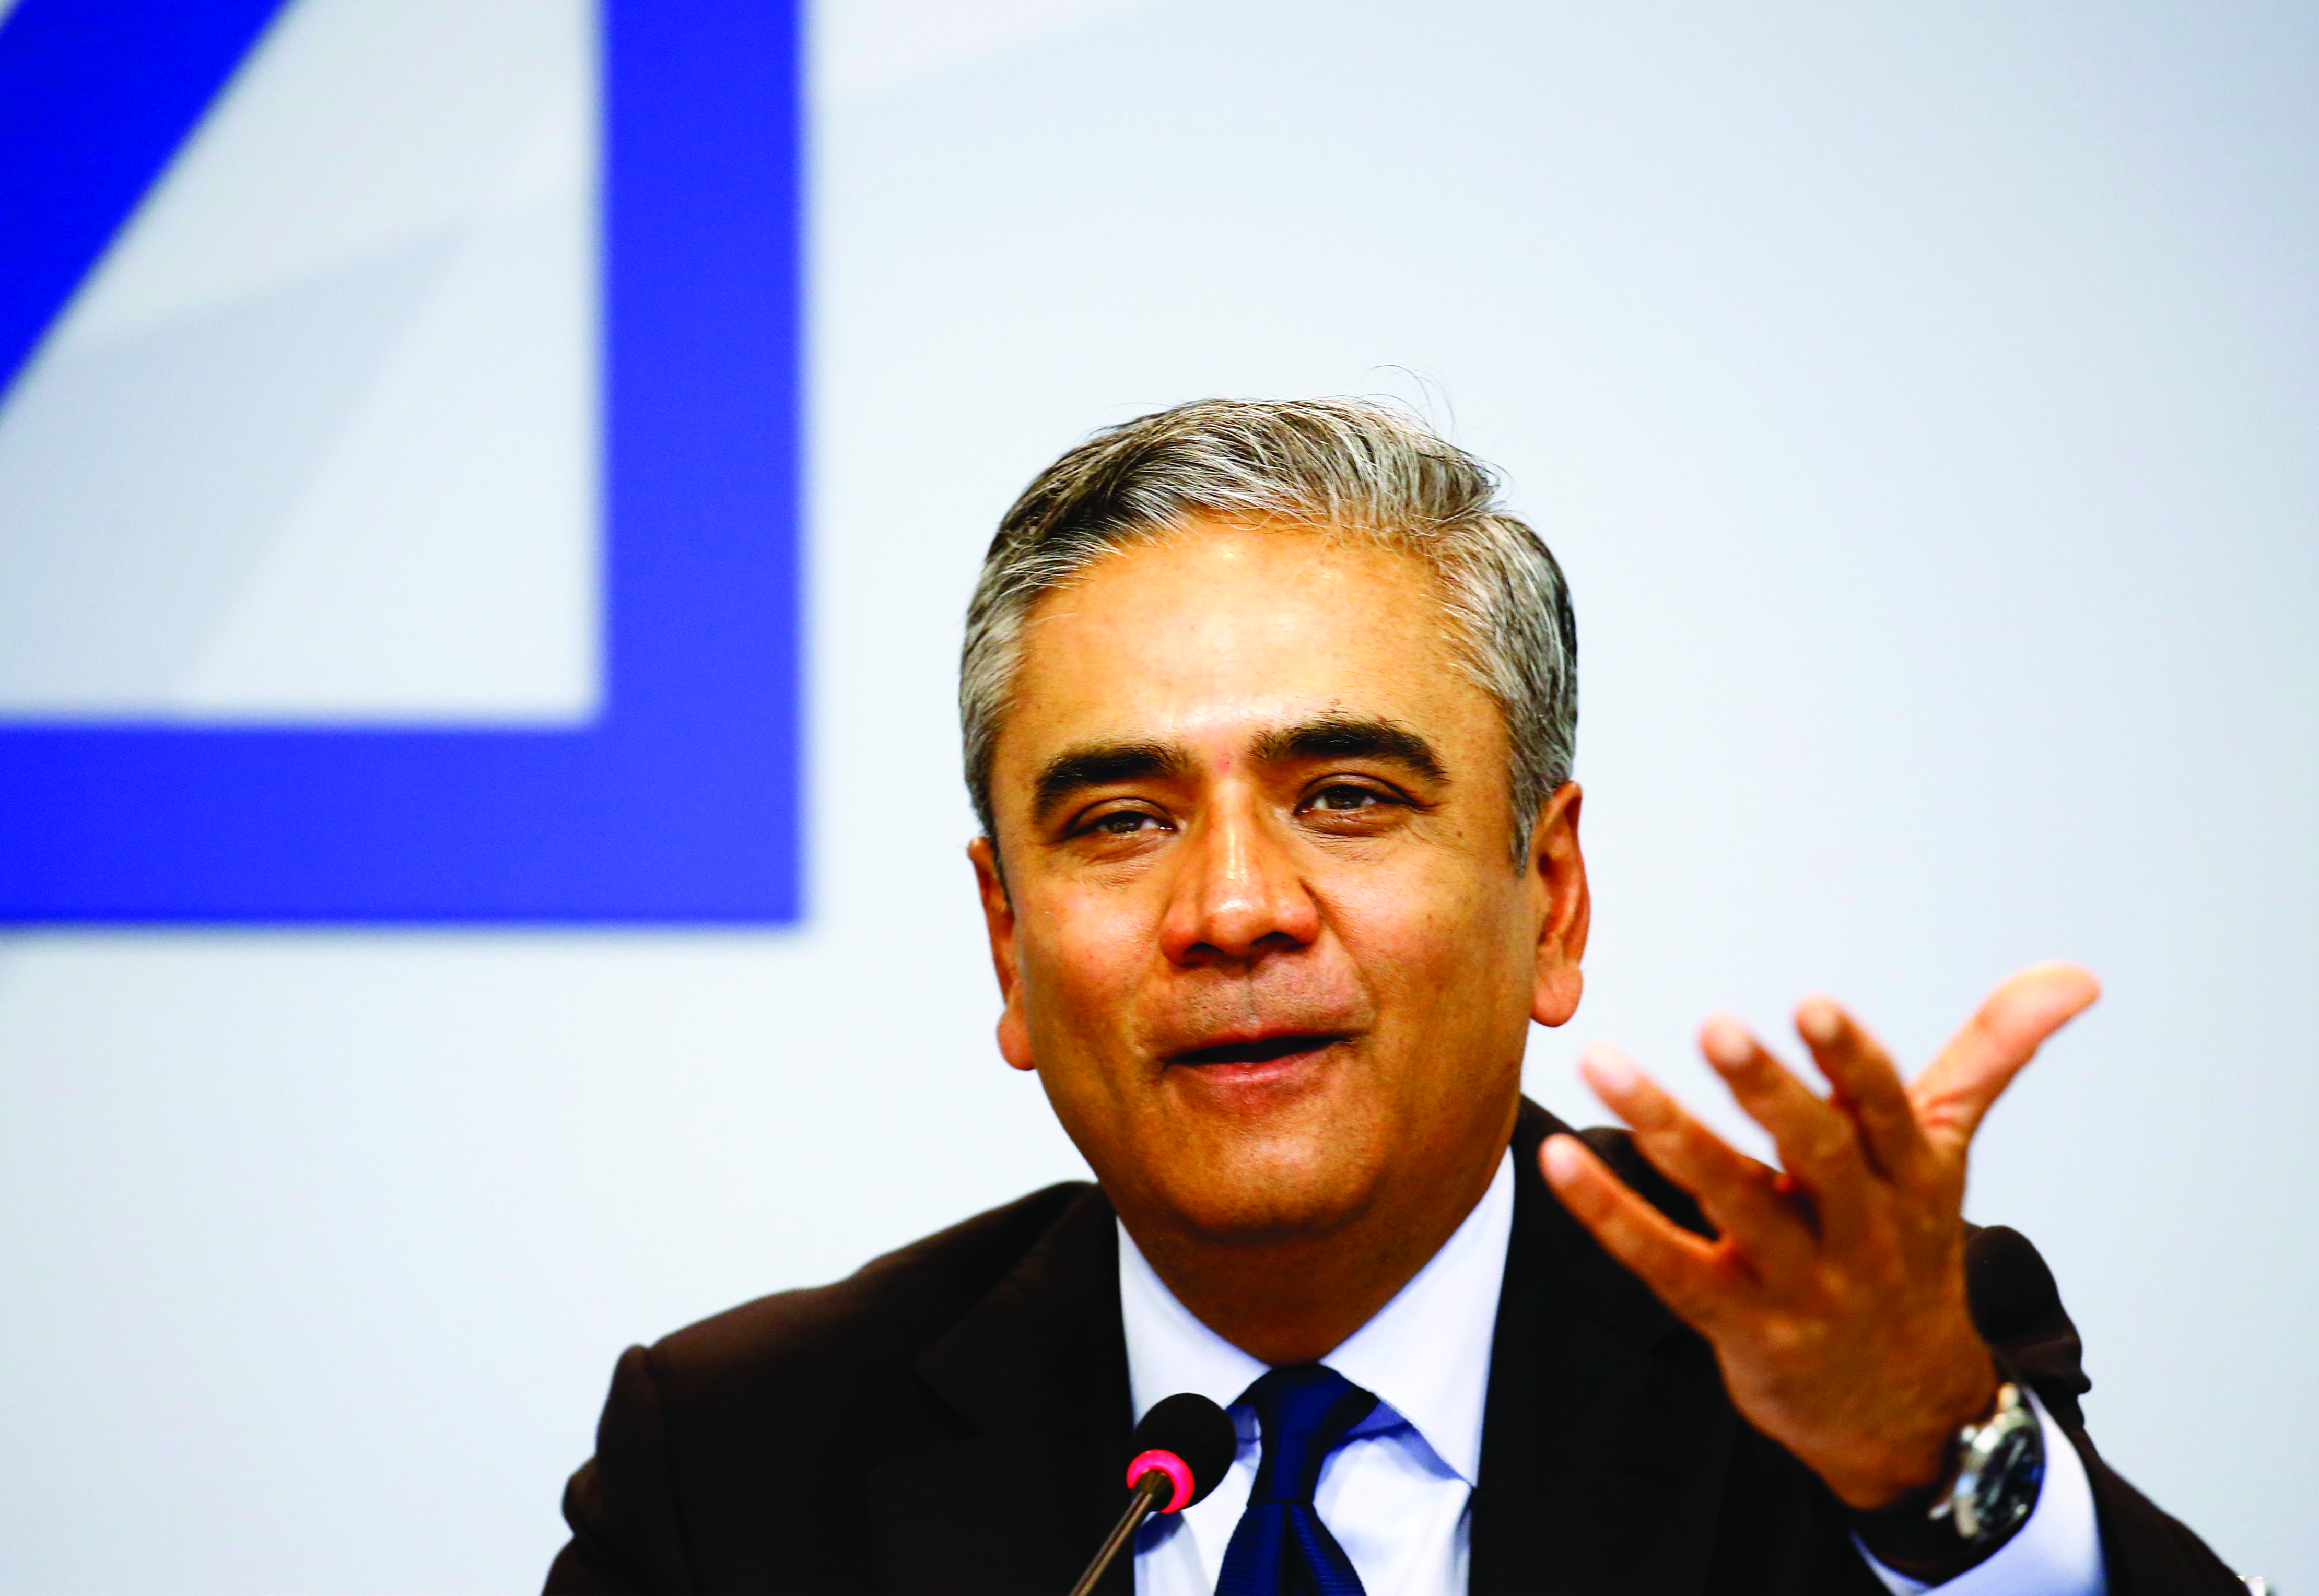 Anshu Jain, co-CEO of Deutsche Bank, gestures at a news conference in Frankfurt, Germany, April 27, 2015. Deutsche Bank will cut 200 billion euros ($217.5 billion) in investment bank assets and exit a tenth of the countries in which it operates as part of a restructuring program designed to boost earnings and cut risk. REUTERS/Kai Pfaffenbach - RTX1AFMH